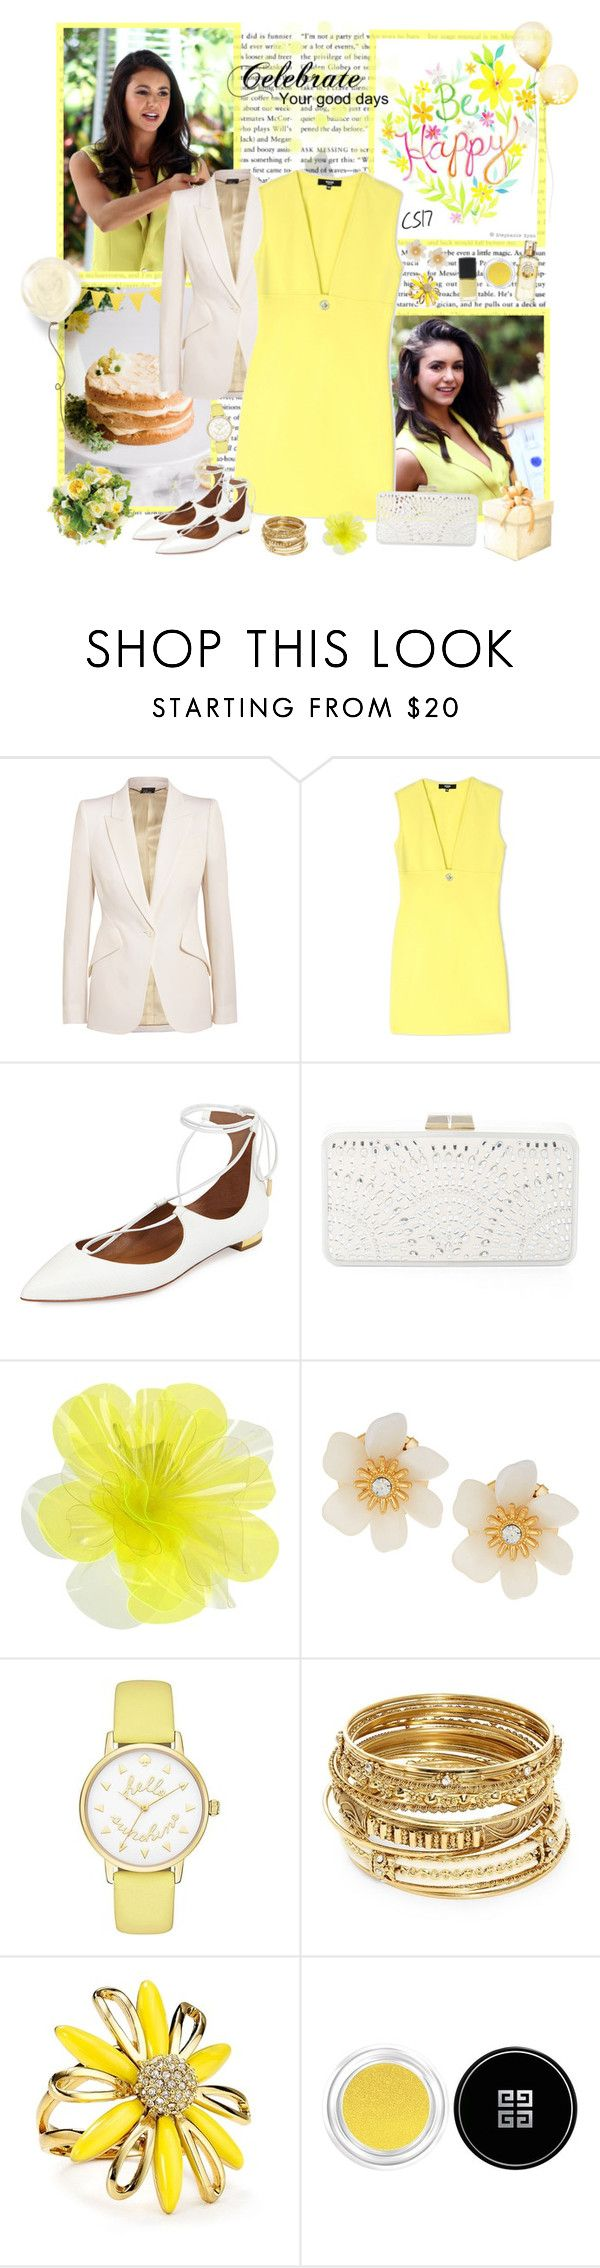 """""""June Celebrations Style with Nina Dobrev for June Birthdays."""" by shiningstars17 ❤ liked on Polyvore featuring Alexander McQueen, Versus, Aquazzura, Guide London, BCBGMAXAZRIA, DOUUOD, Lydell NYC, Kate Spade, ABS by Allen Schwartz and Givenchy"""